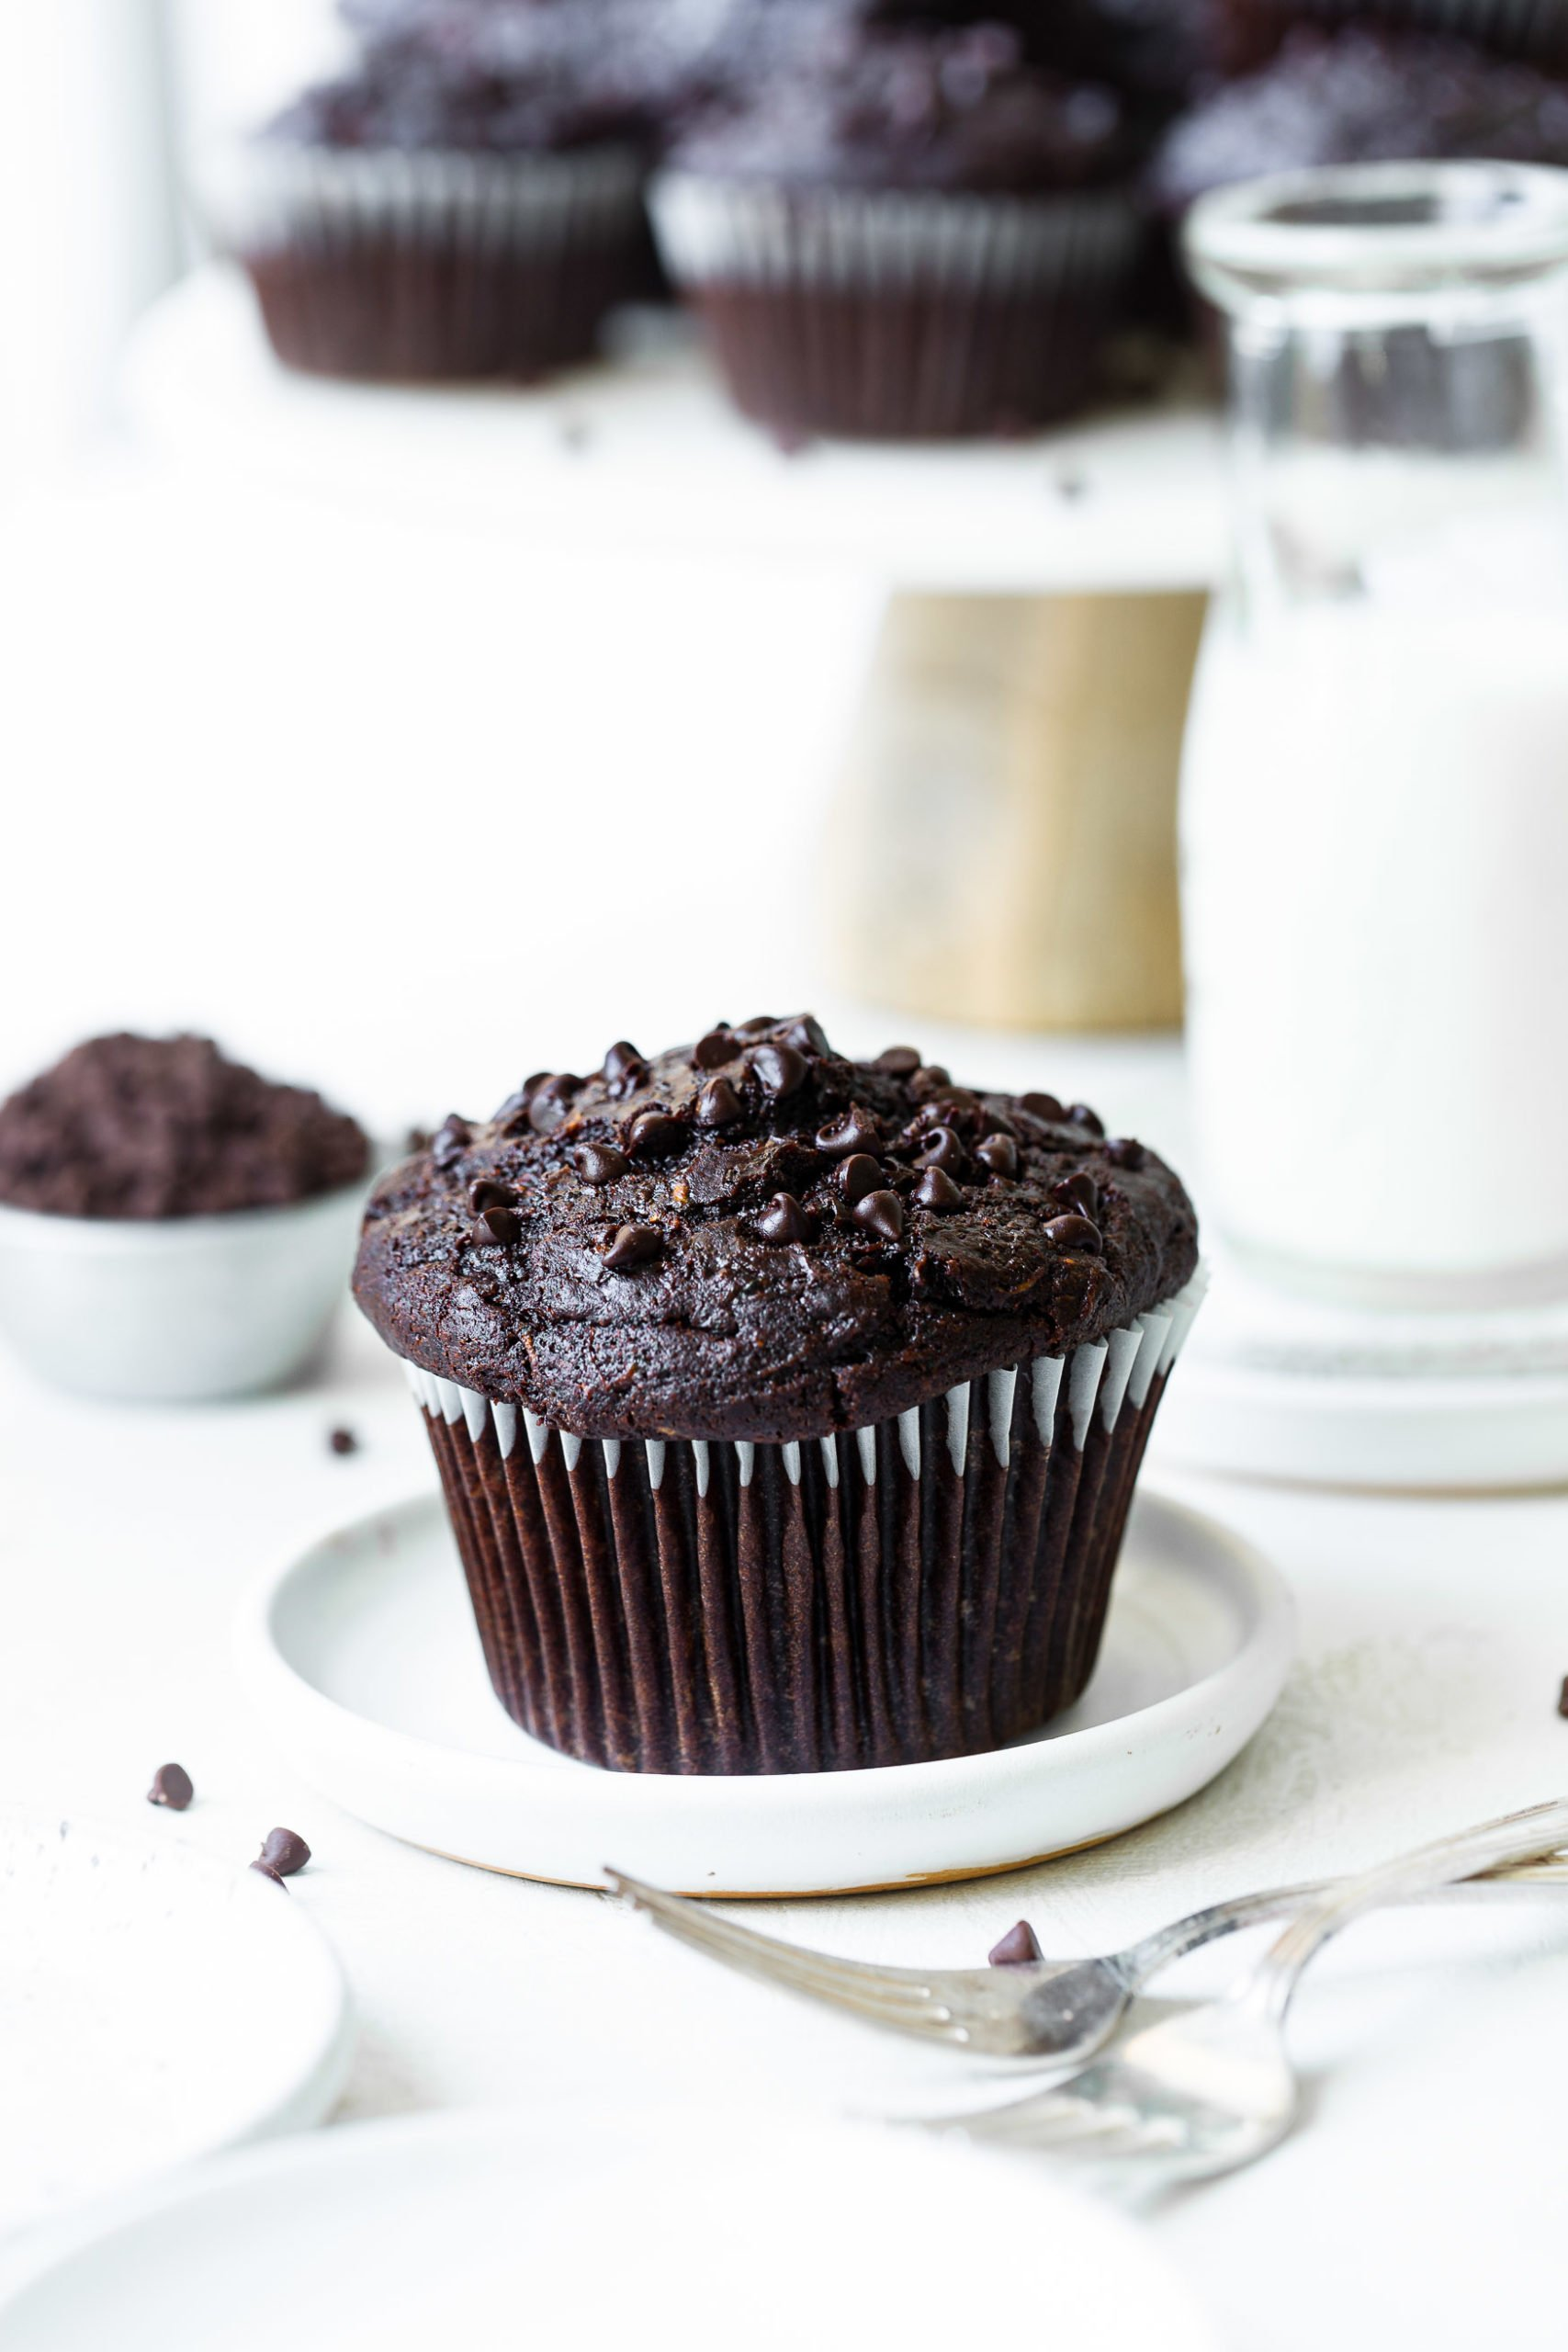 A white plate holding a jumbo chocolate zucchini muffin with mini chocolate chips on top